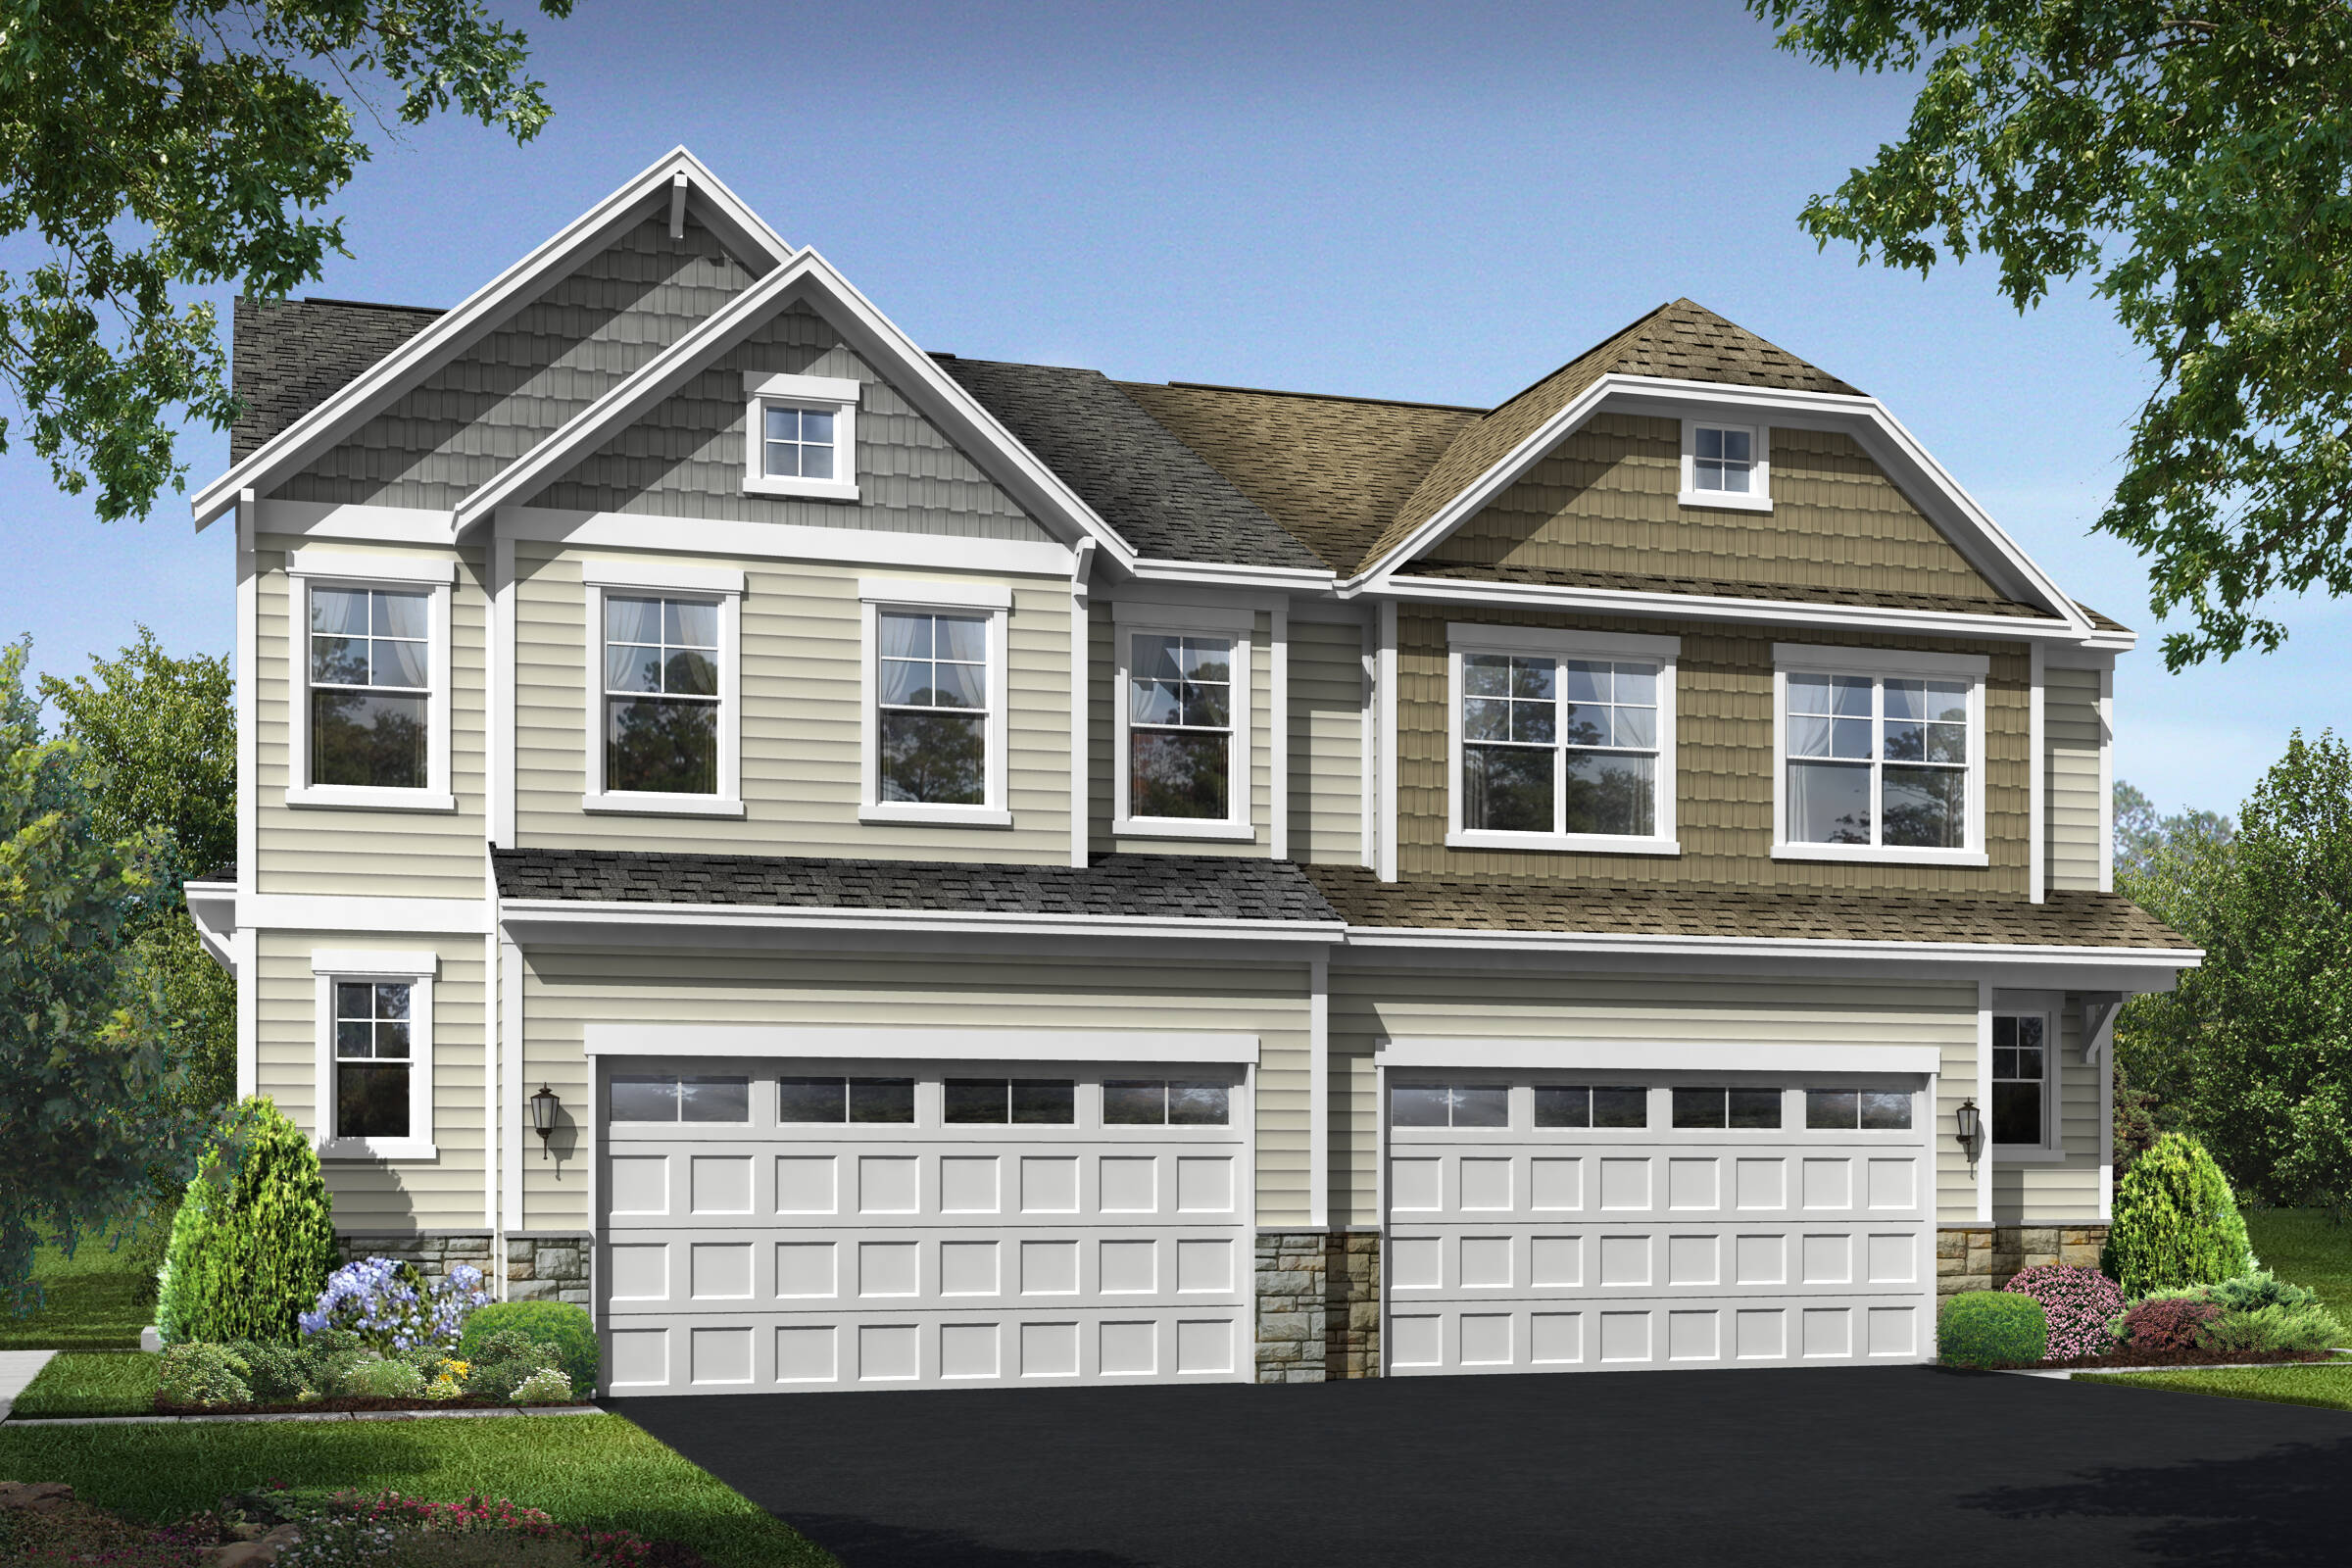 shenandoah a b new homes at villas at wellspring in virginia